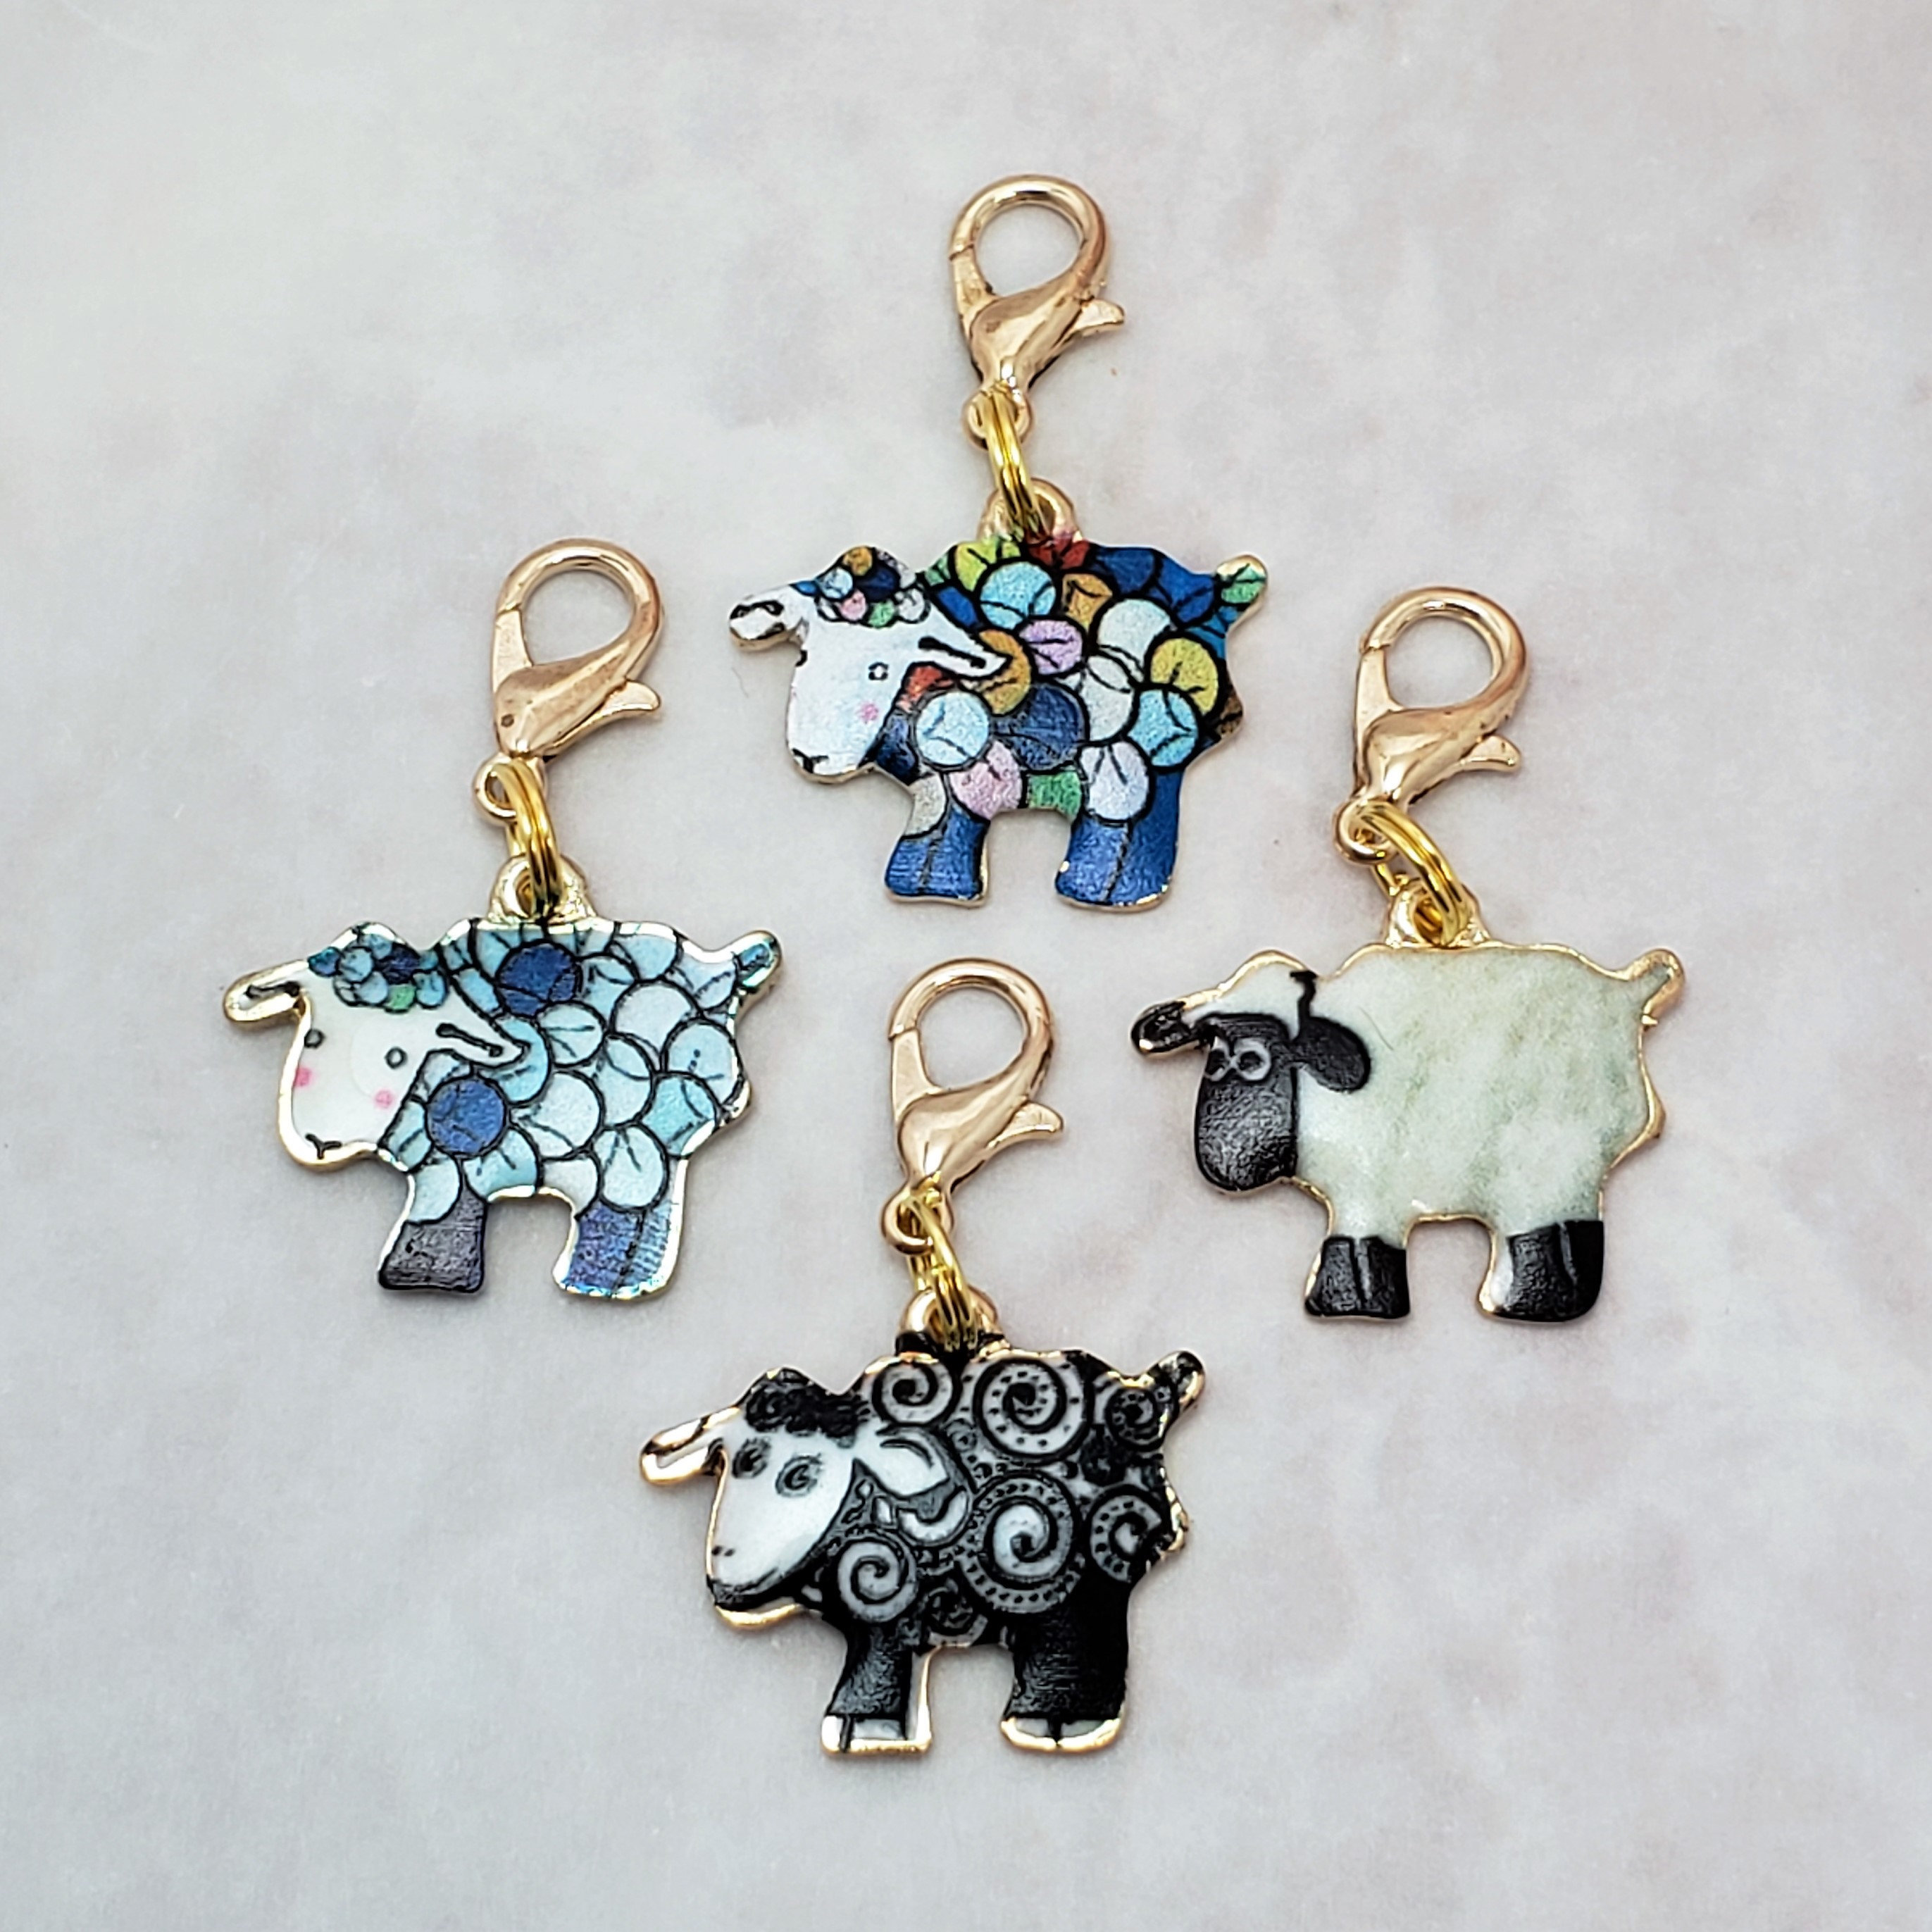 progress keeper crochet accessory Cat Stitch Markers for Knitting 5pc Large White Cat Heads project bag charms Crochet stitch marker